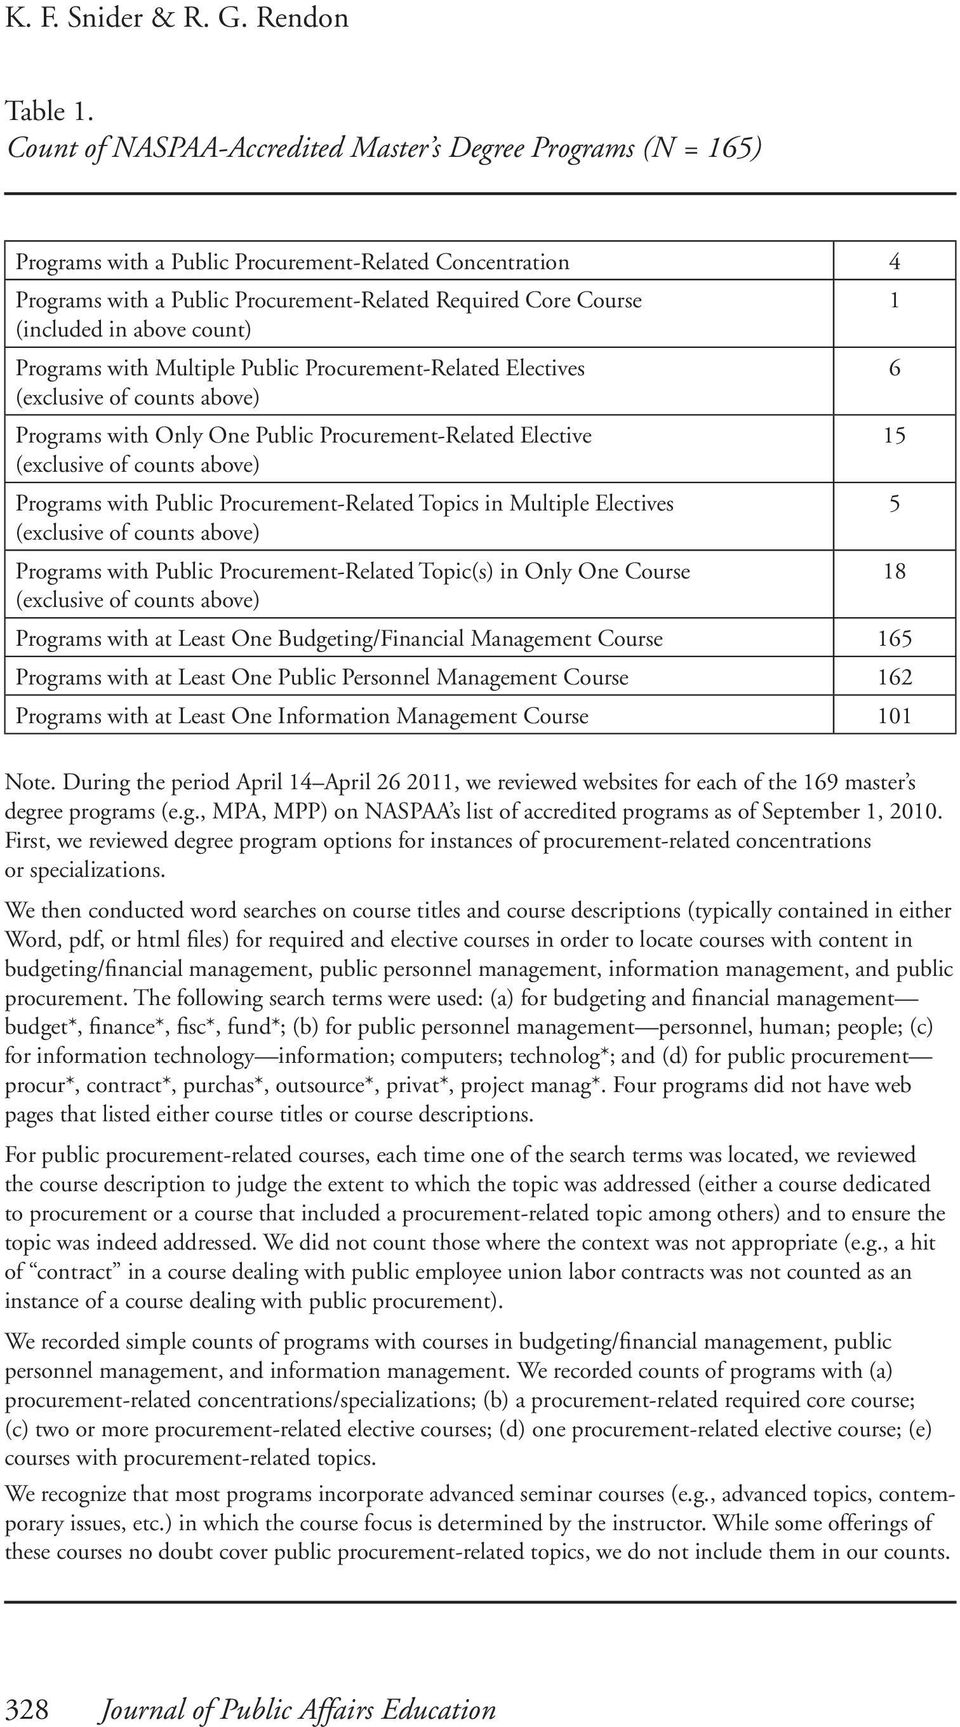 above count) Programs with Multiple Public Procurement-Related Electives (exclusive of counts above) Programs with Only One Public Procurement-Related Elective (exclusive of counts above) Programs